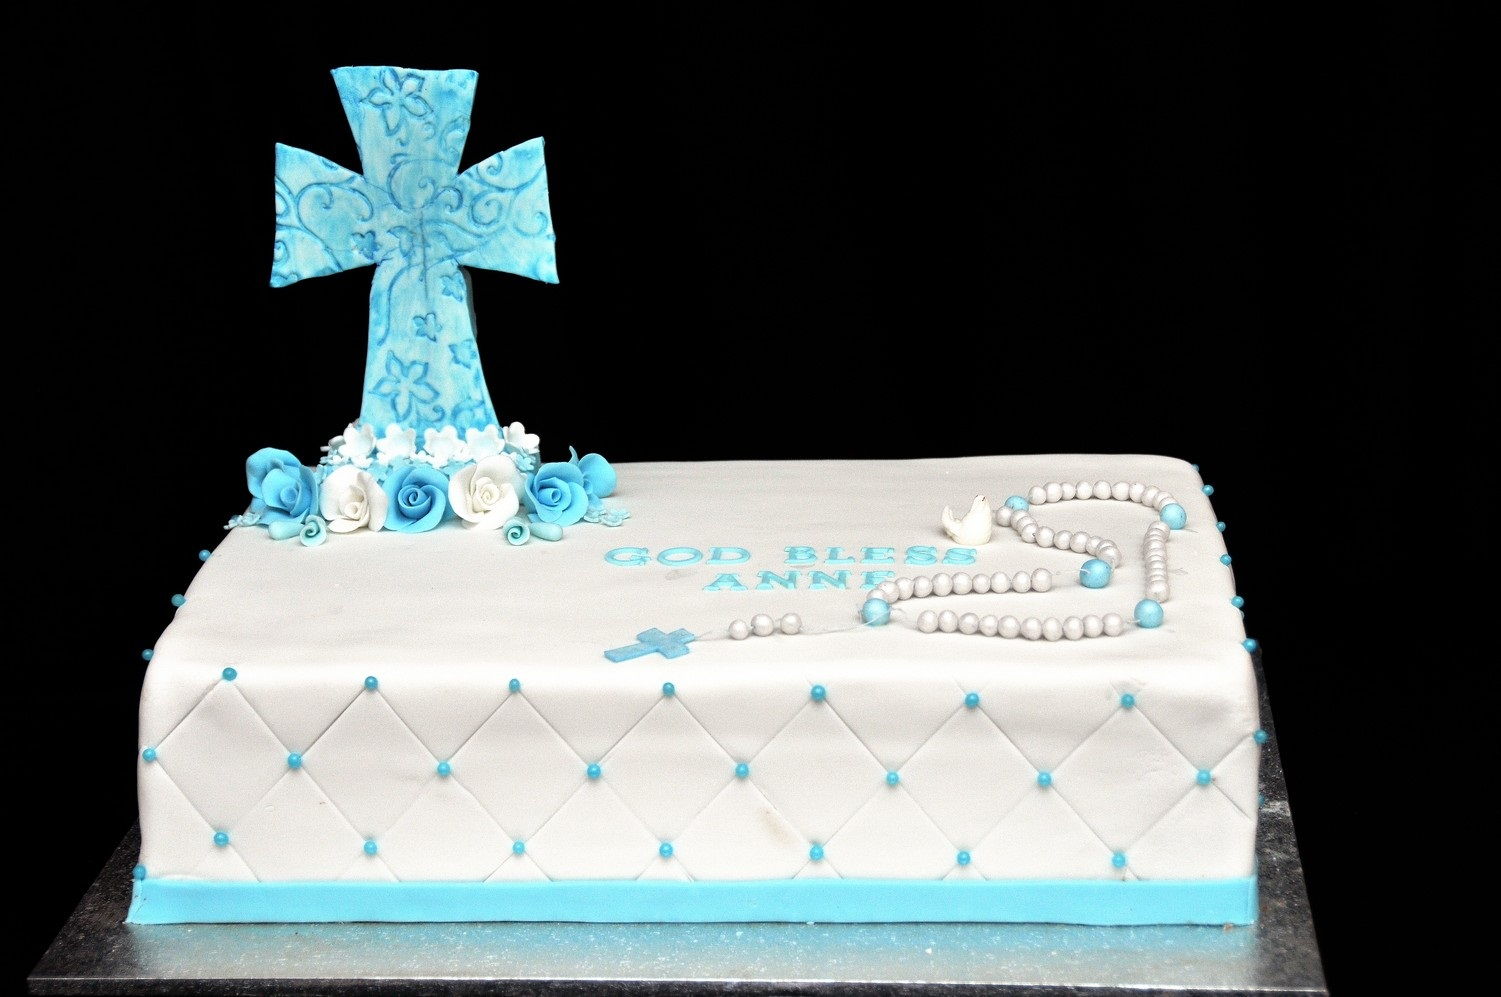 First Communion Cake Images : First Communion Cakes   Decoration Ideas Little Birthday ...